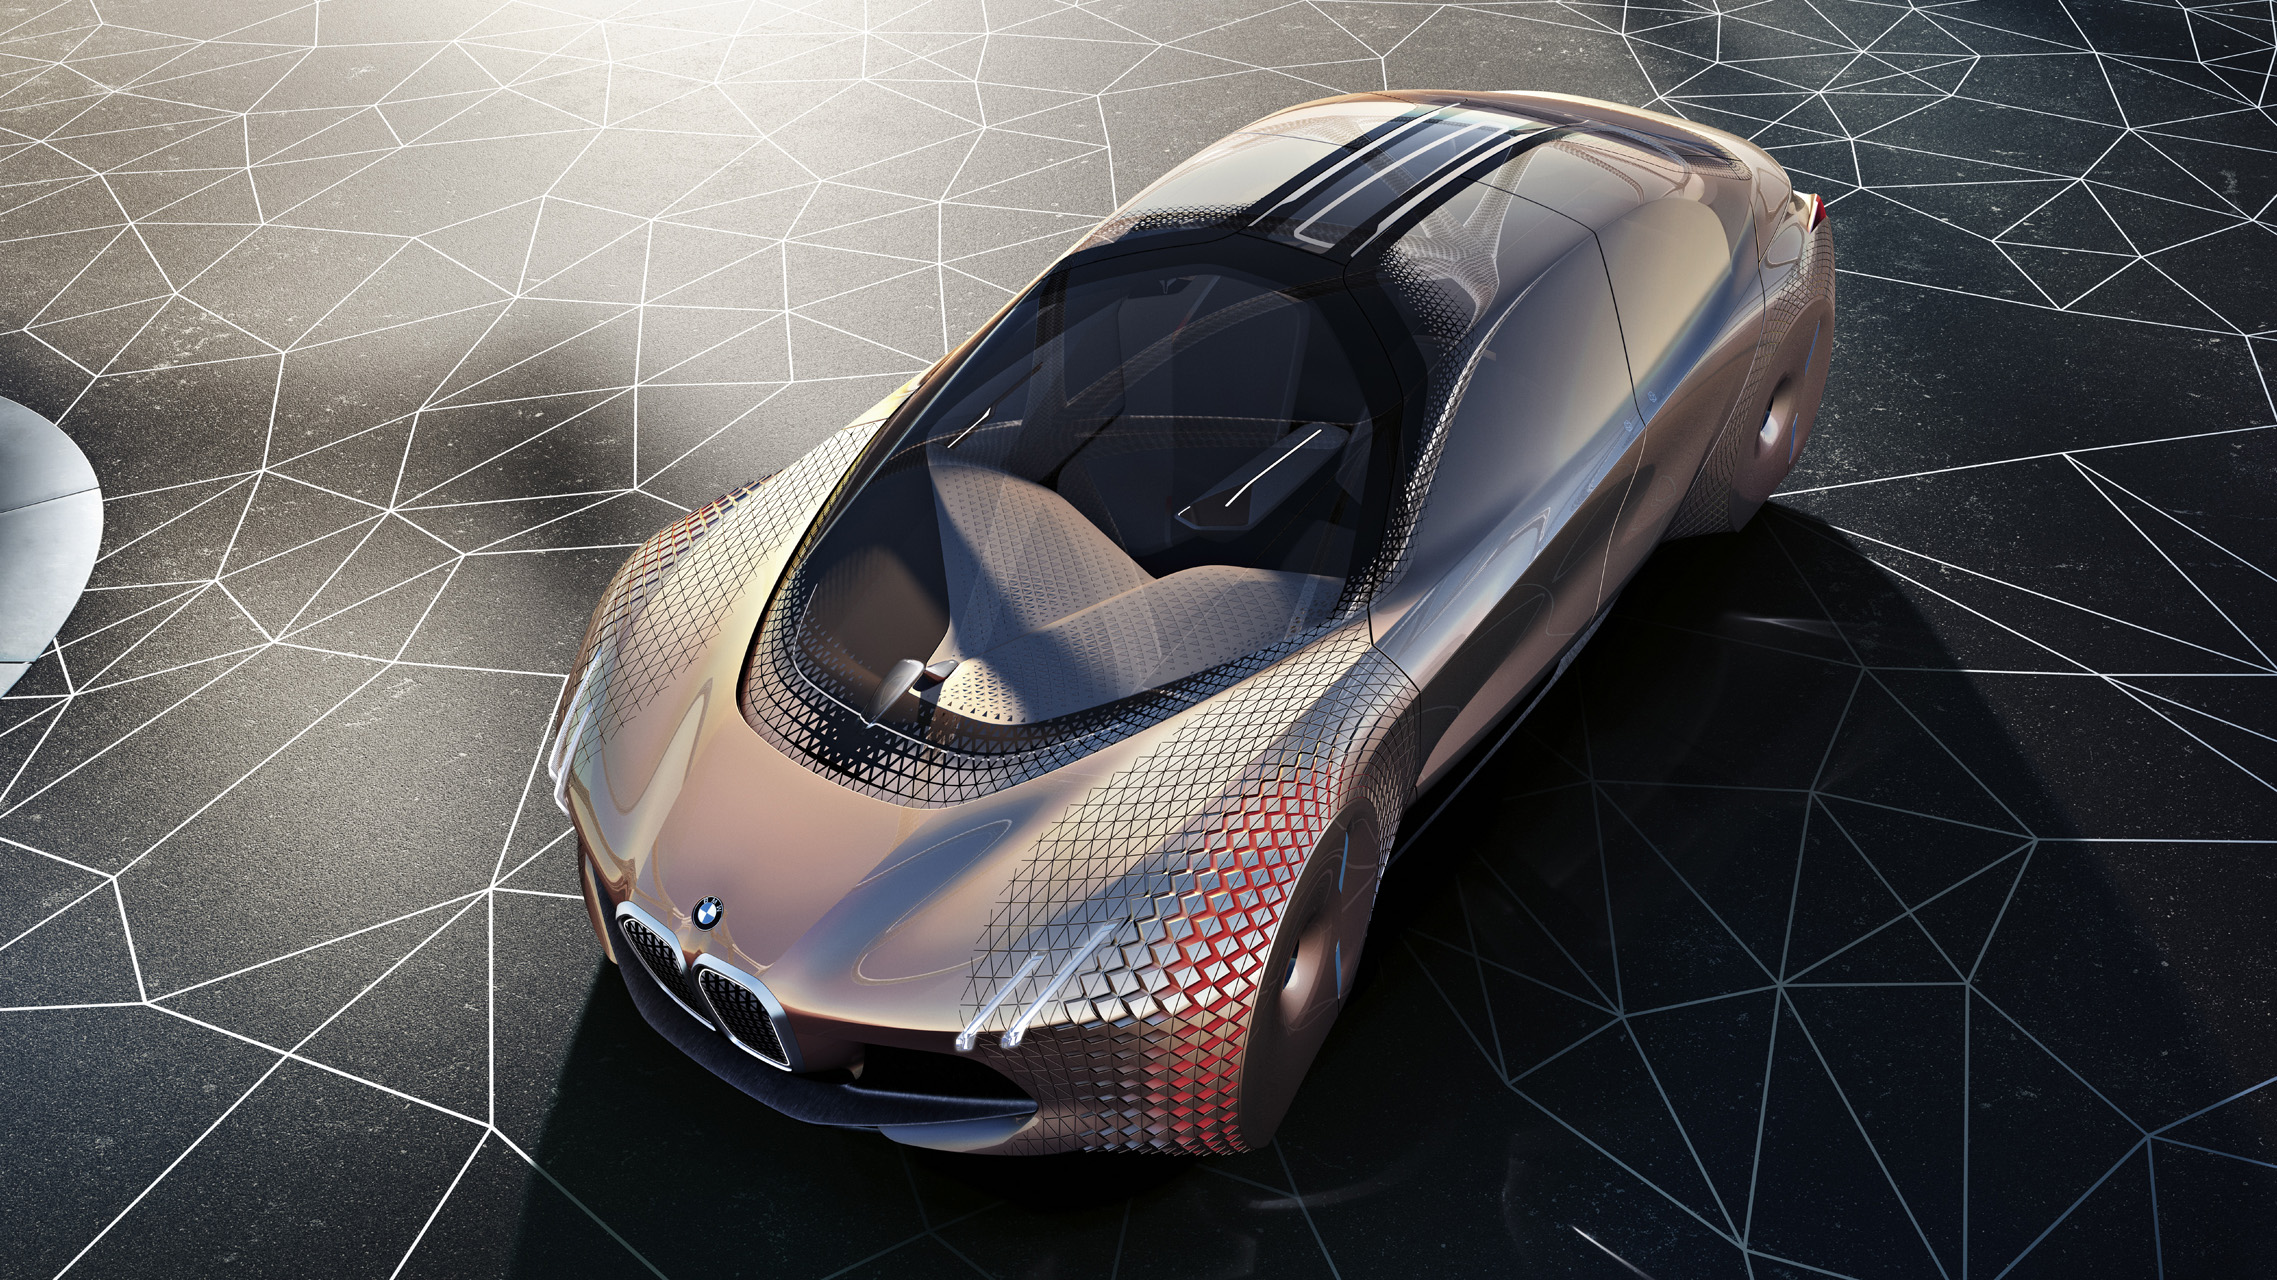 Revealed The Bmw Vision Next 100 Concept Top Gear